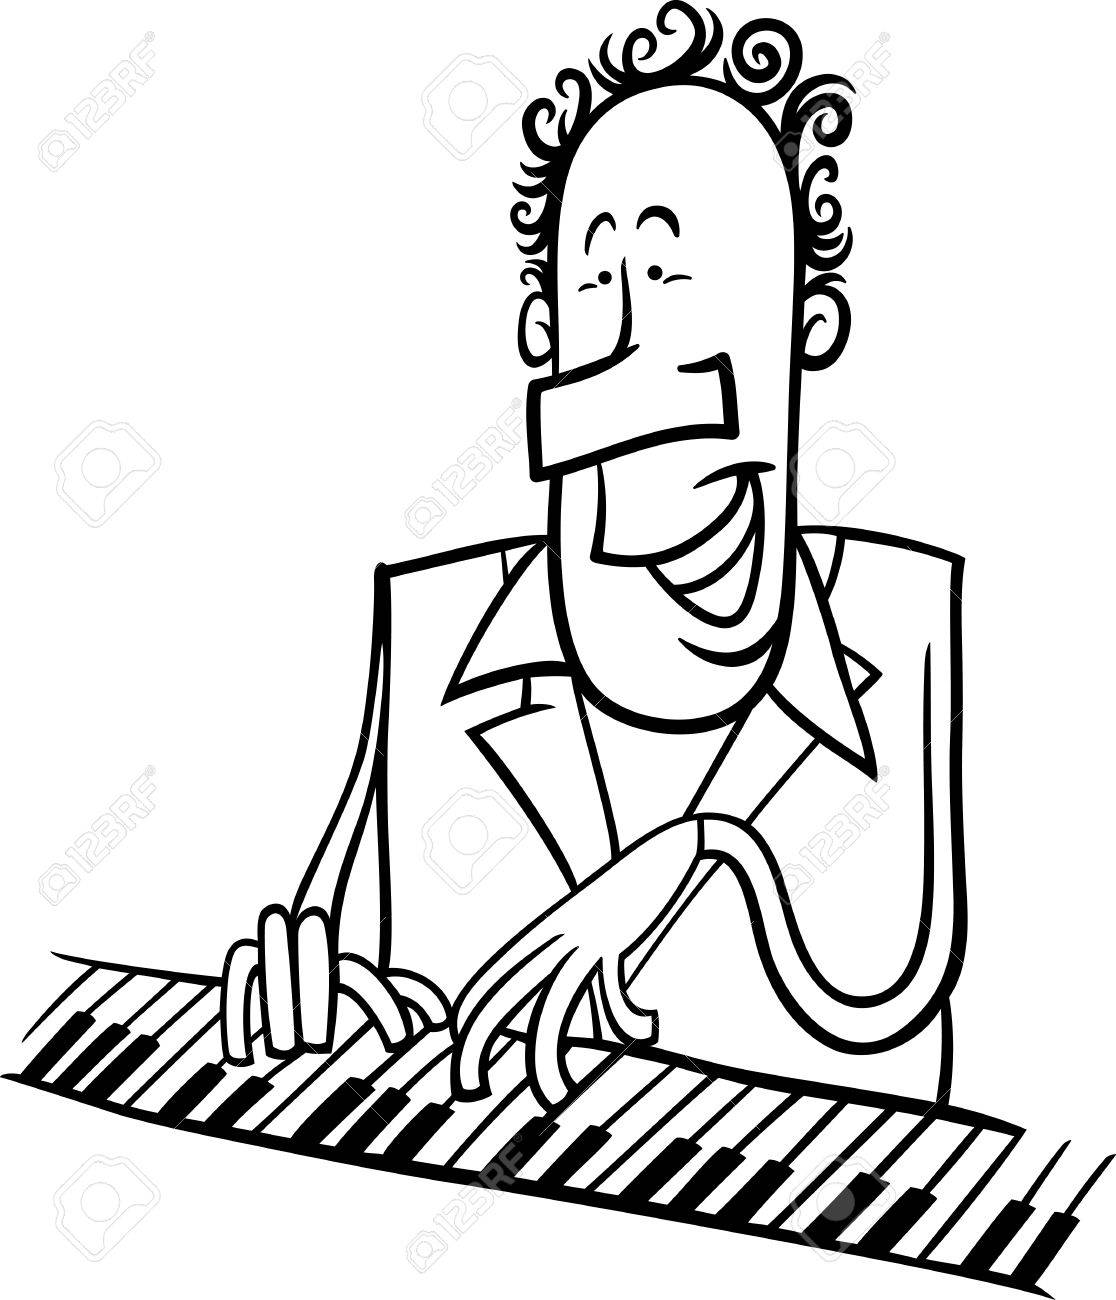 1116x1300 Black And White Cartoon Illustration Of Pianist Or Jazz Musician